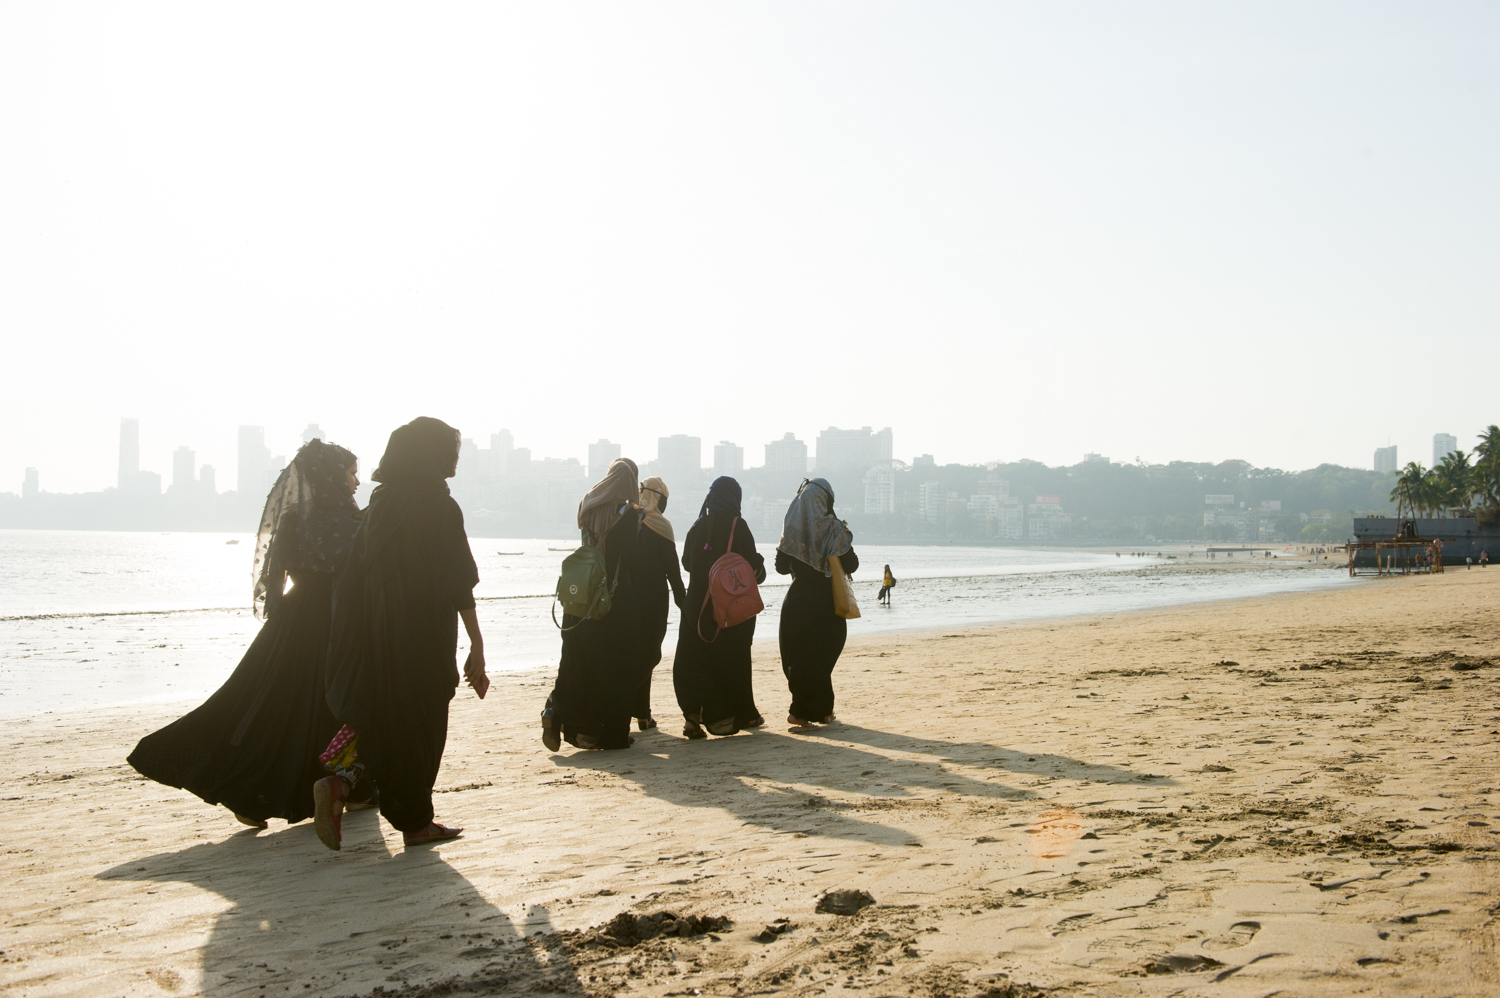 Muslim women taking a walk on the beach, Mumbai, 2019